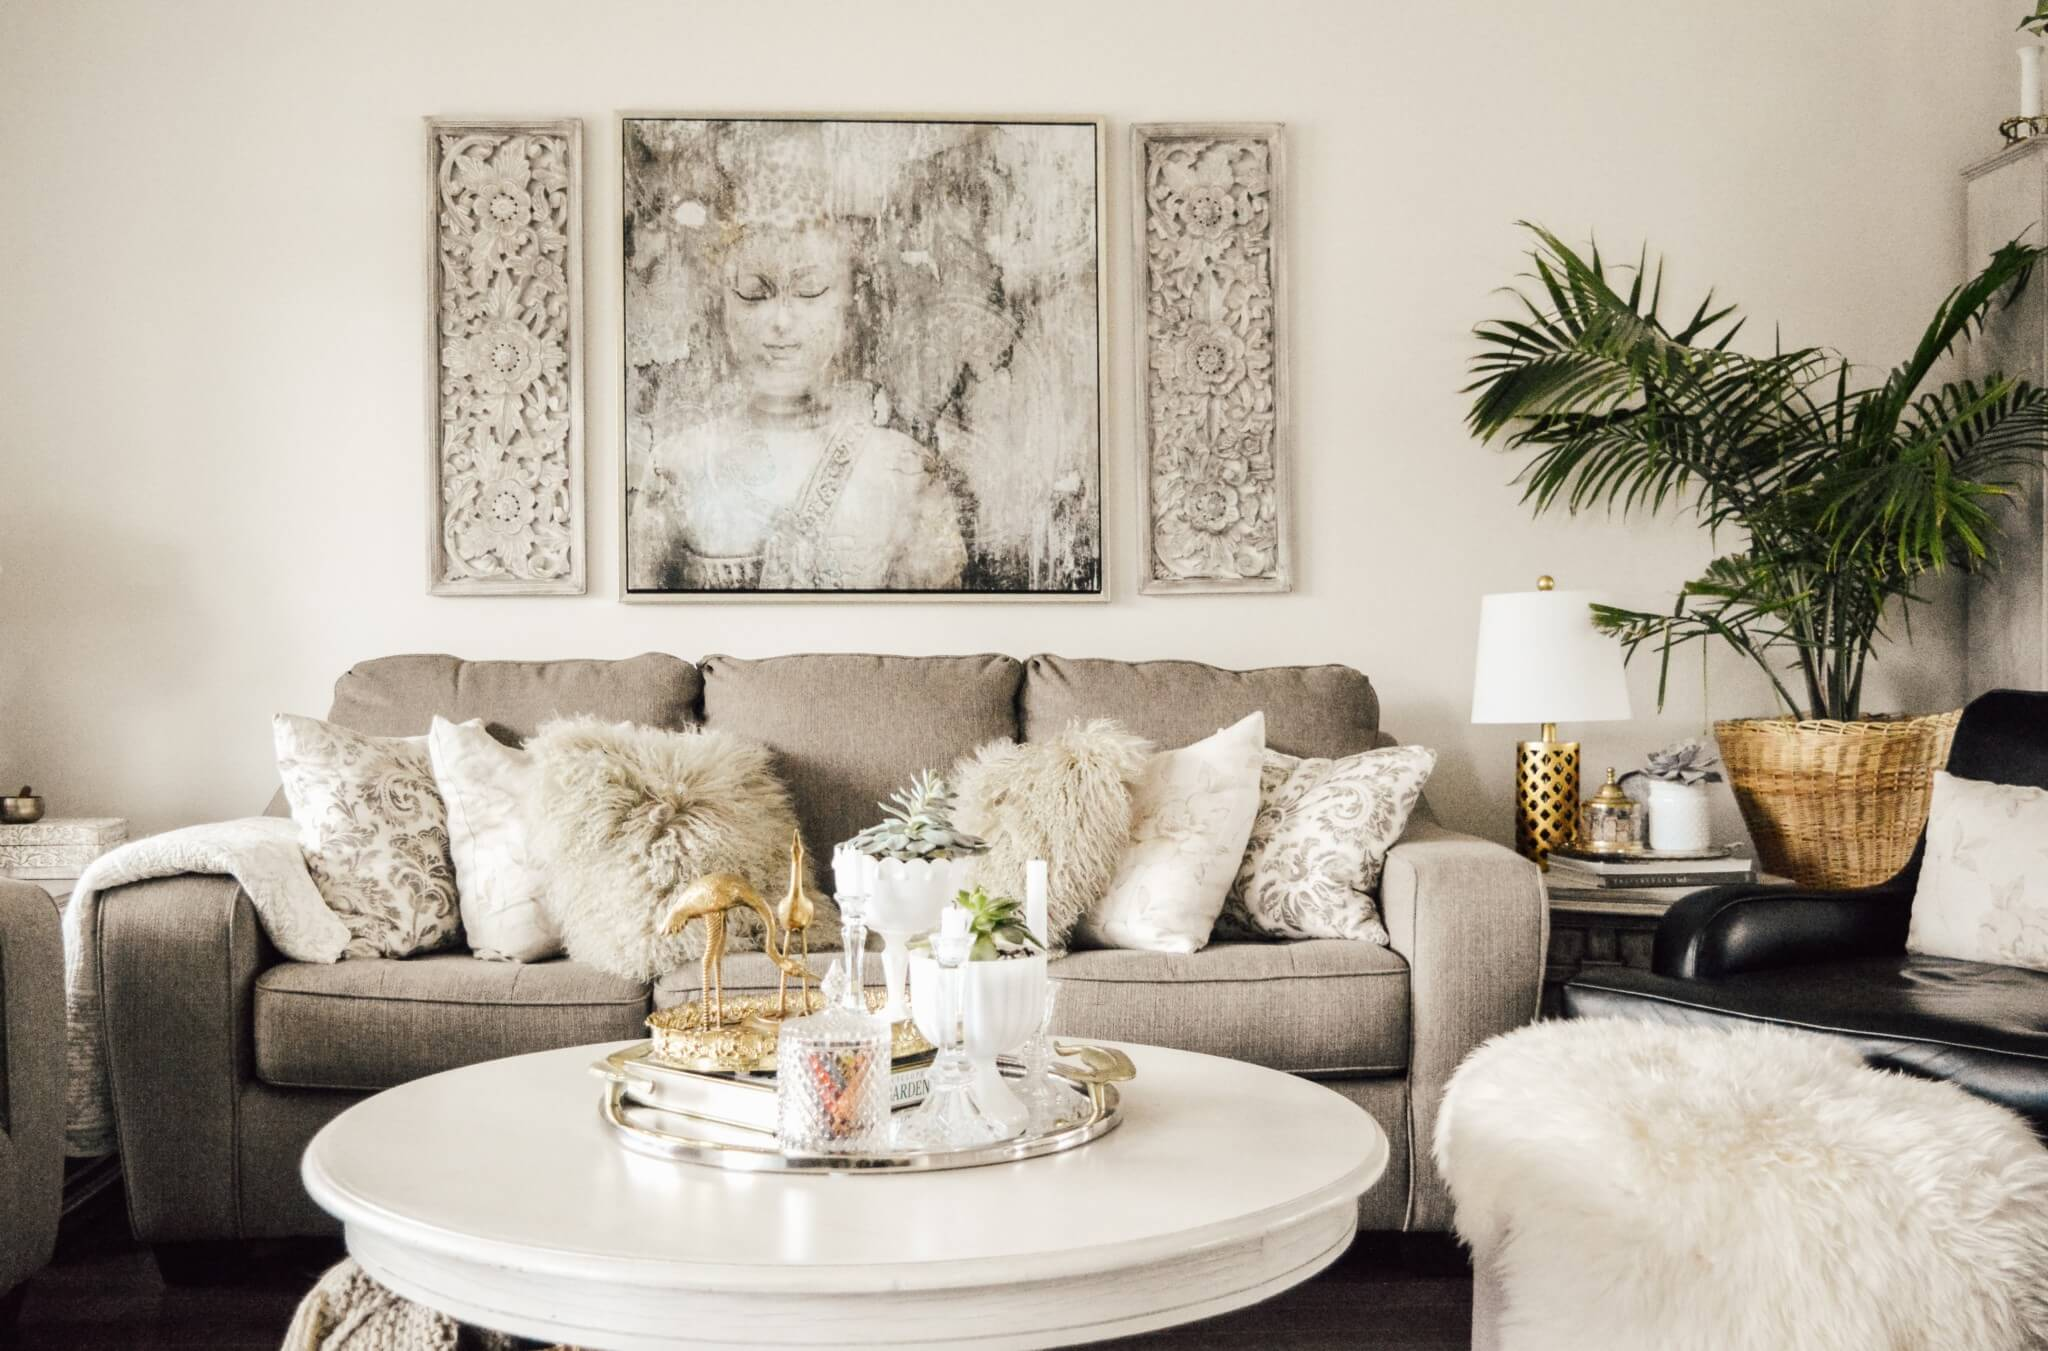 Using Feng Shui in the living room.